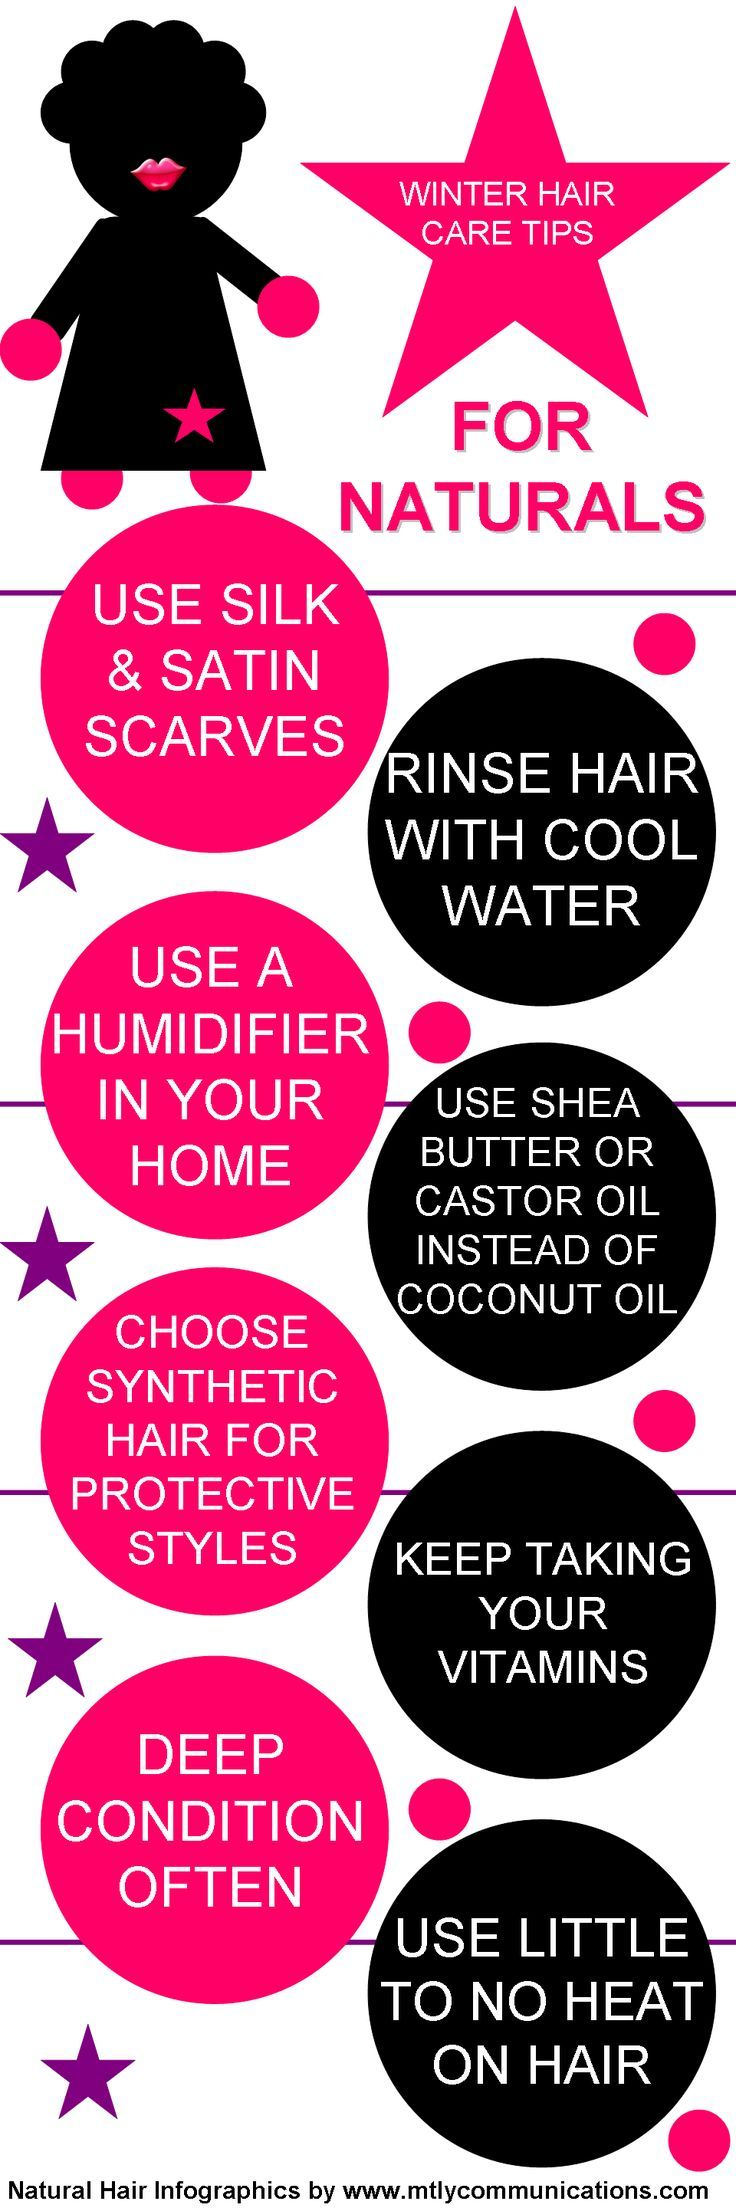 Winter Natural Hair Care Winter Hair Care Winter Natural Hair Care Natural Hair Care Tips